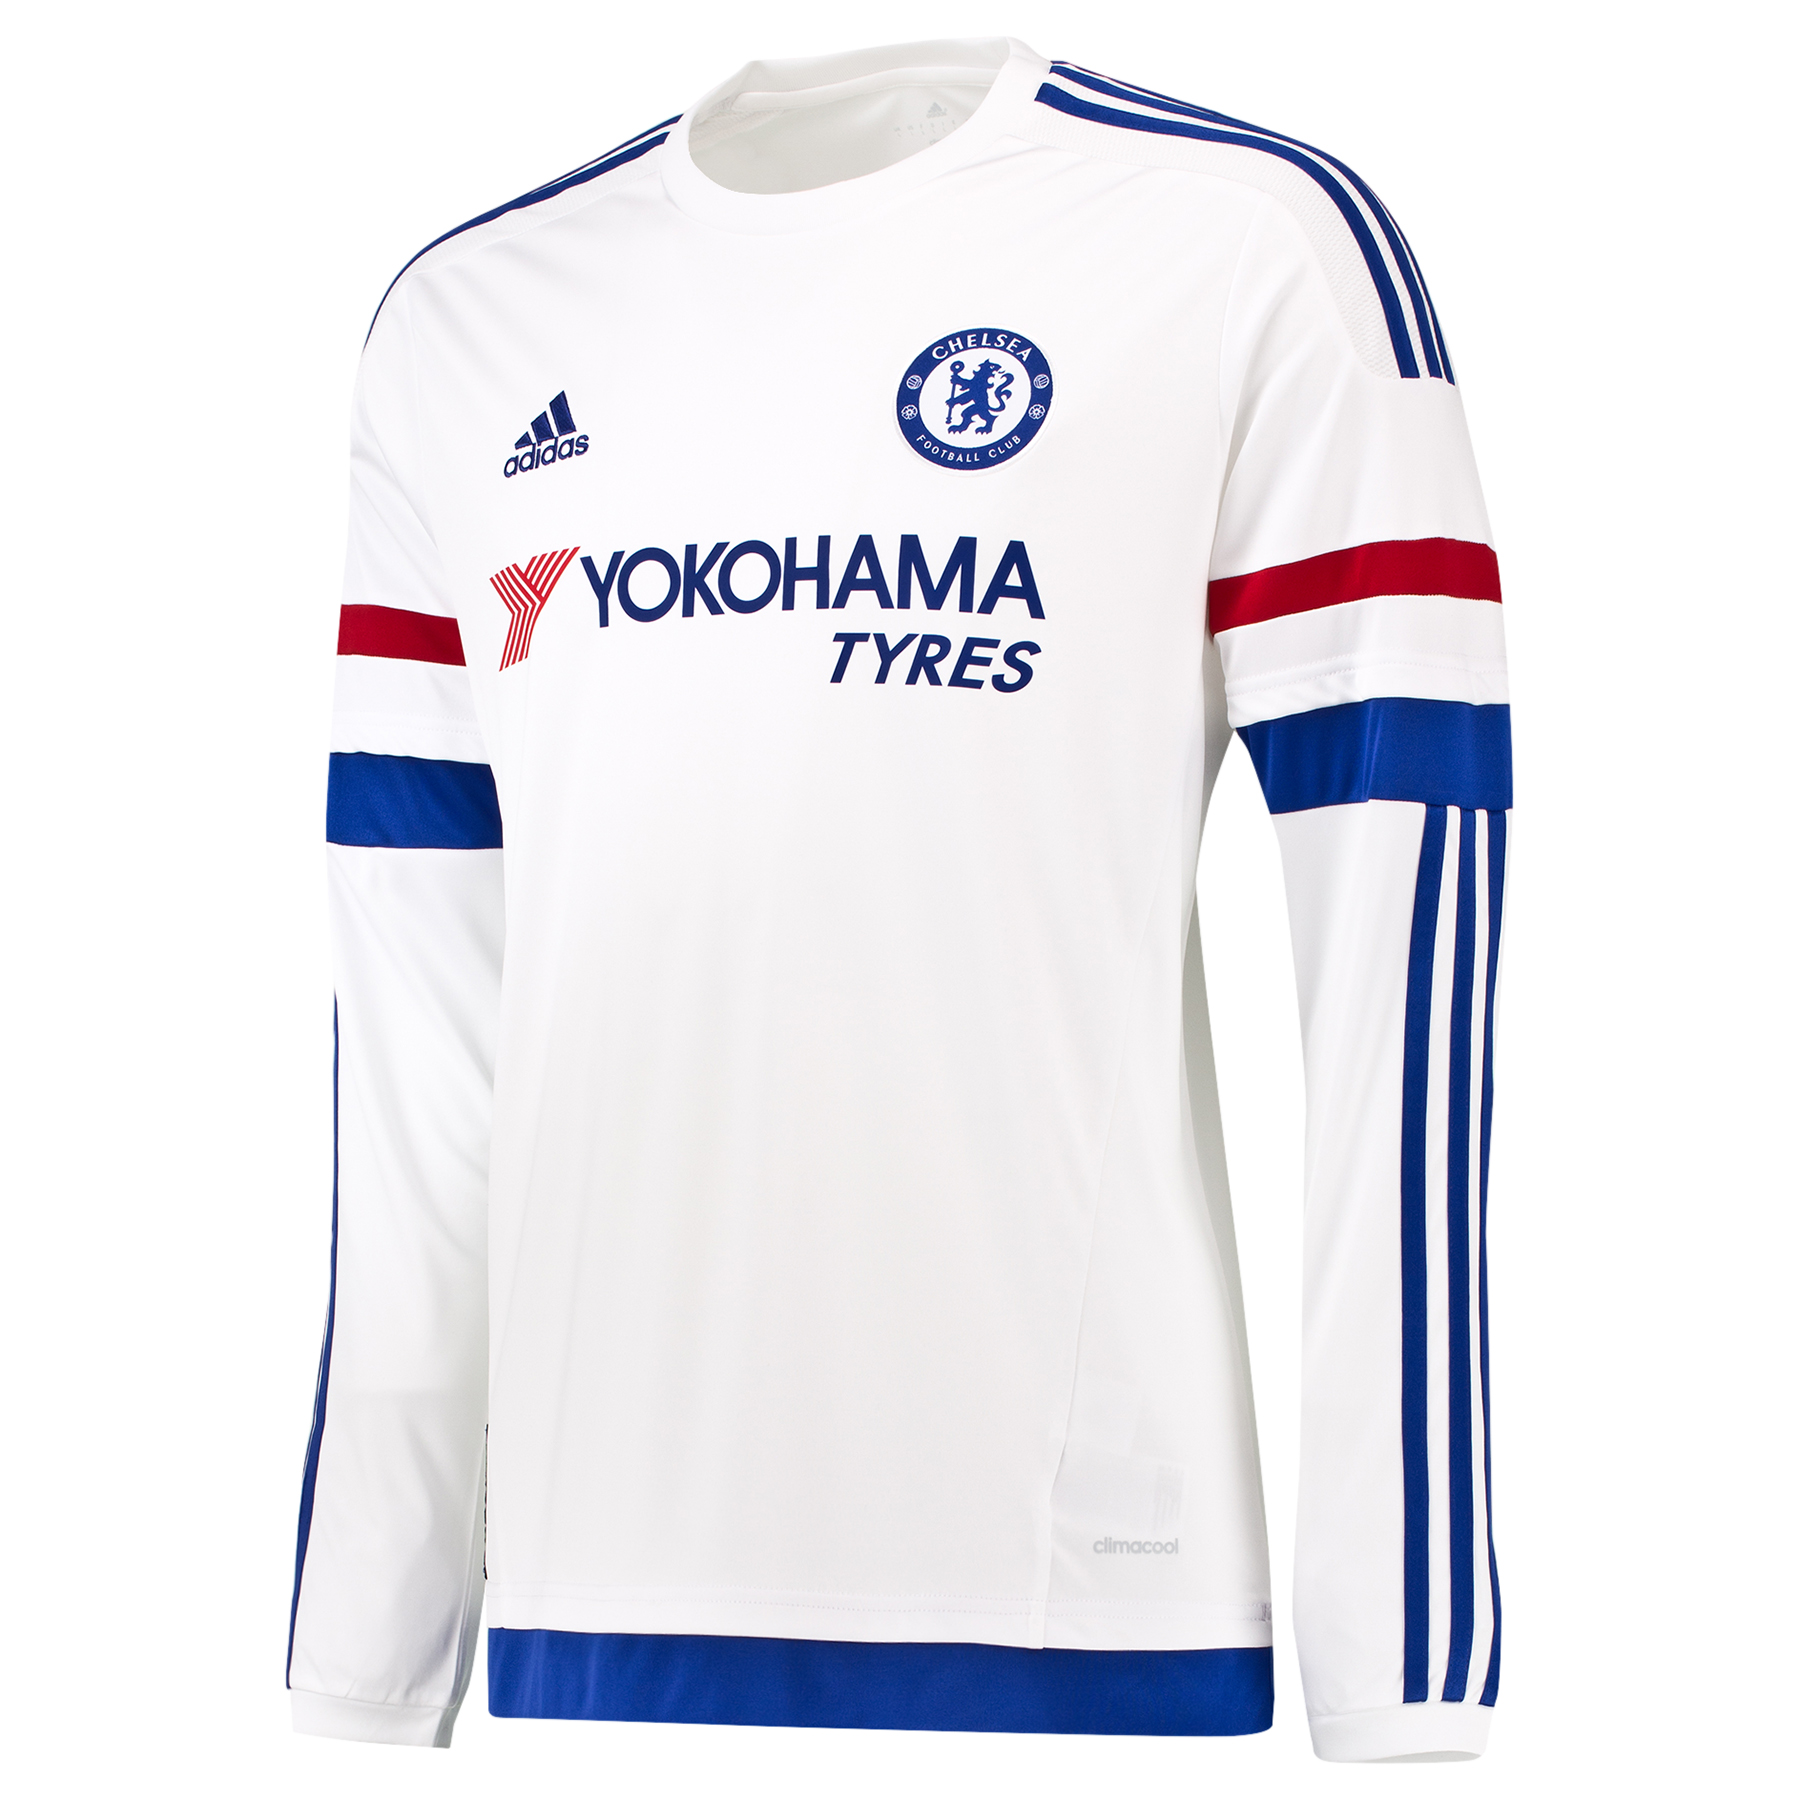 Chelsea  Away Shirt 2015/16 - Long Sleeve   Show your support for your favourite club with the new 2015/16 Chelsea Long Sleeved Away Shirt. The Away Kit mirrors the colour story of the Home Kit in an unseen way: Red, White and Chelsea Blue stripes on the arms. The fingerprint label adds value and an authentic story. Join the likes of Diego Costa, Cesc Fabregas and Eden Hazard and order your new Chelsea shirt today! Benefits: Engineered fabric on front CLIMACOOL® Provides heat and moisture management through ventilation Regular Fit Club crest: woven badge 100% Polyester The fingerprint represents the identity of all Chelsea fansIconic stripes on the arms